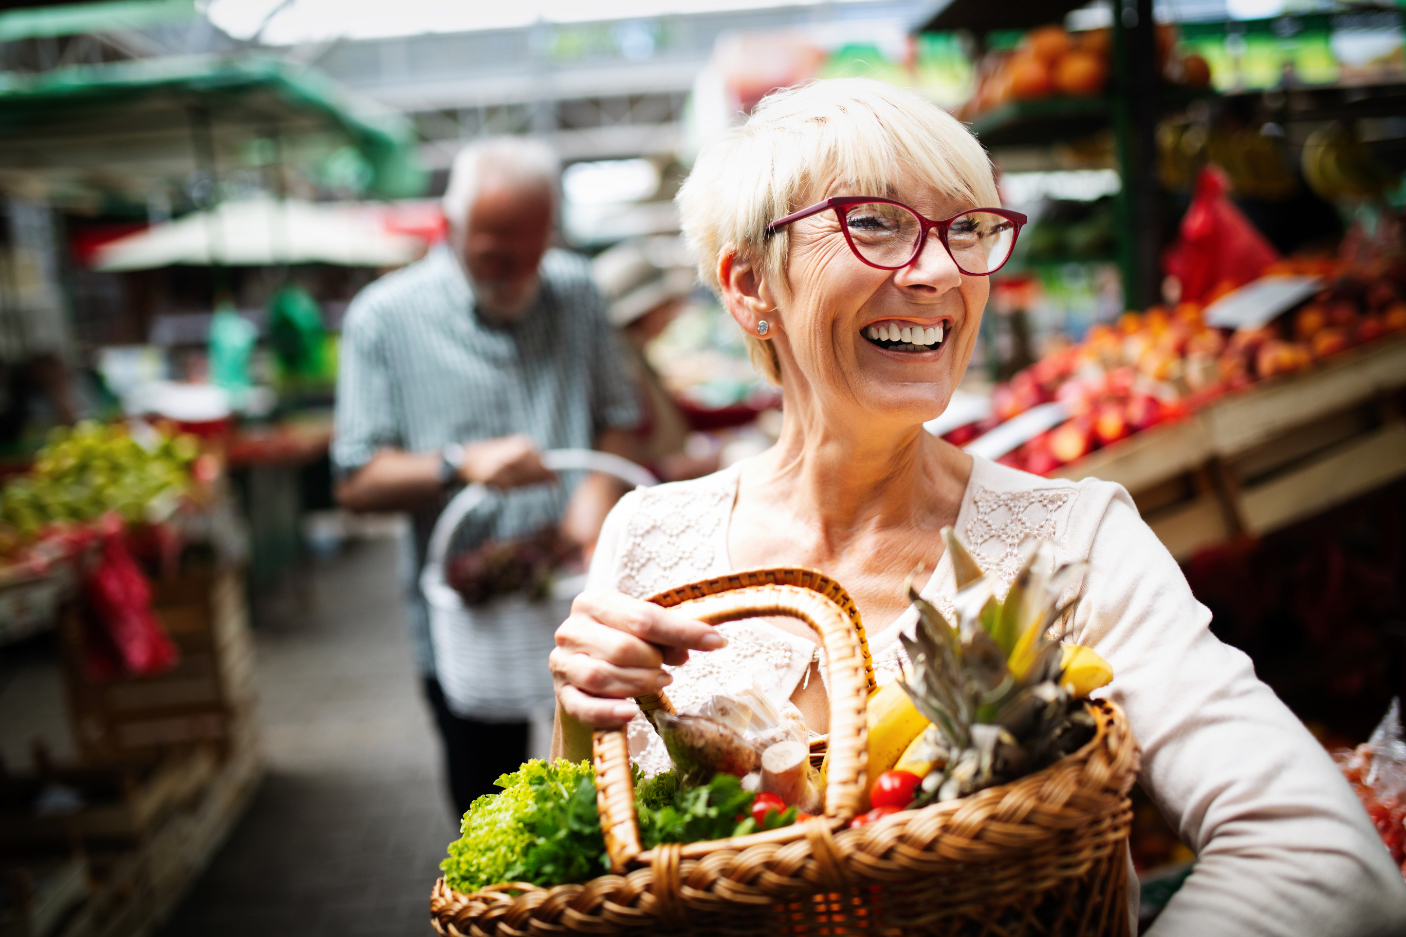 Mature woman buying vegetables at farmers market-flipped